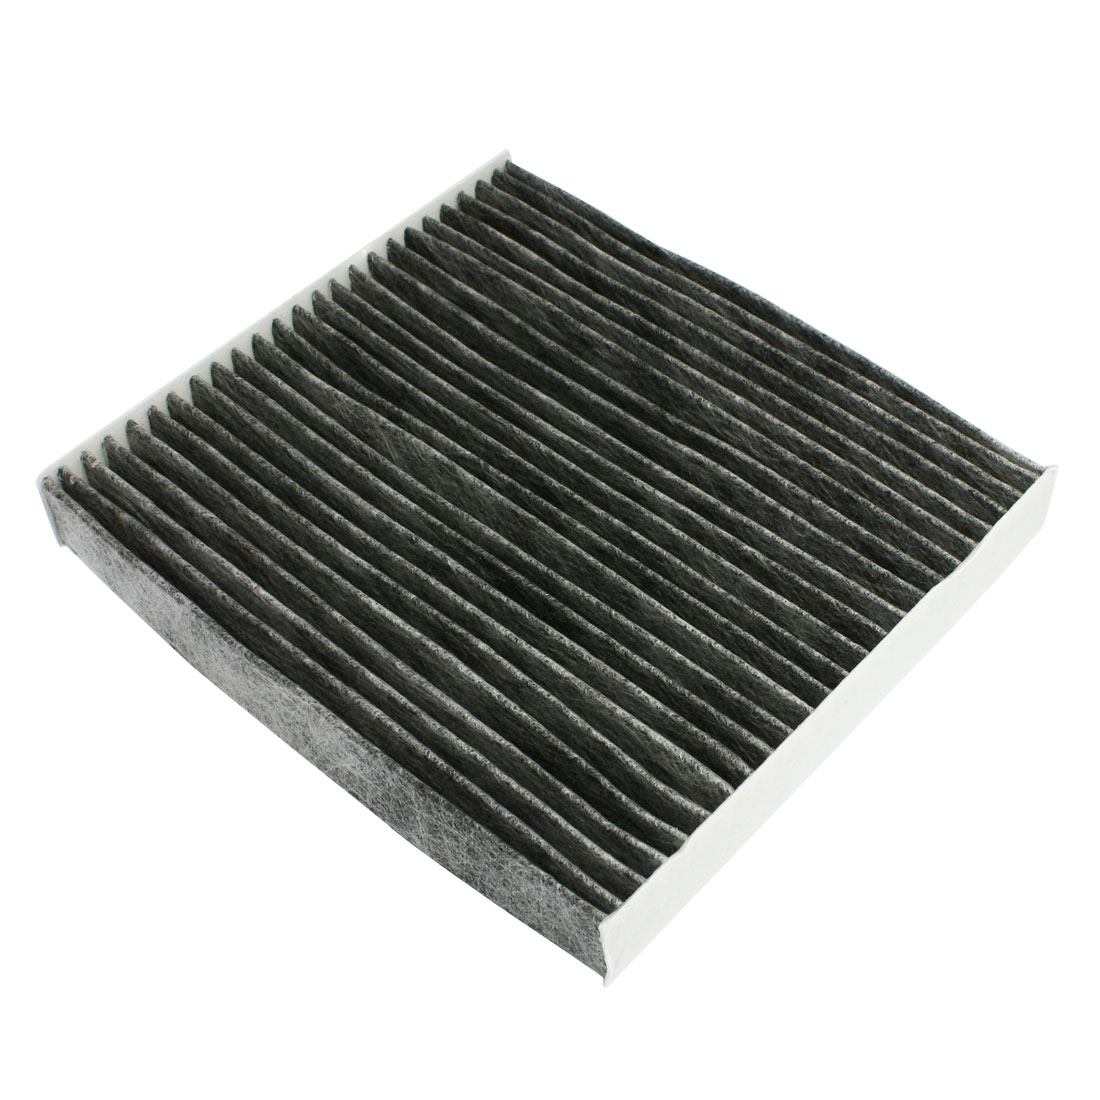 Active Carbon Fiber A/C Cabin Air Filter for Toyota Camry